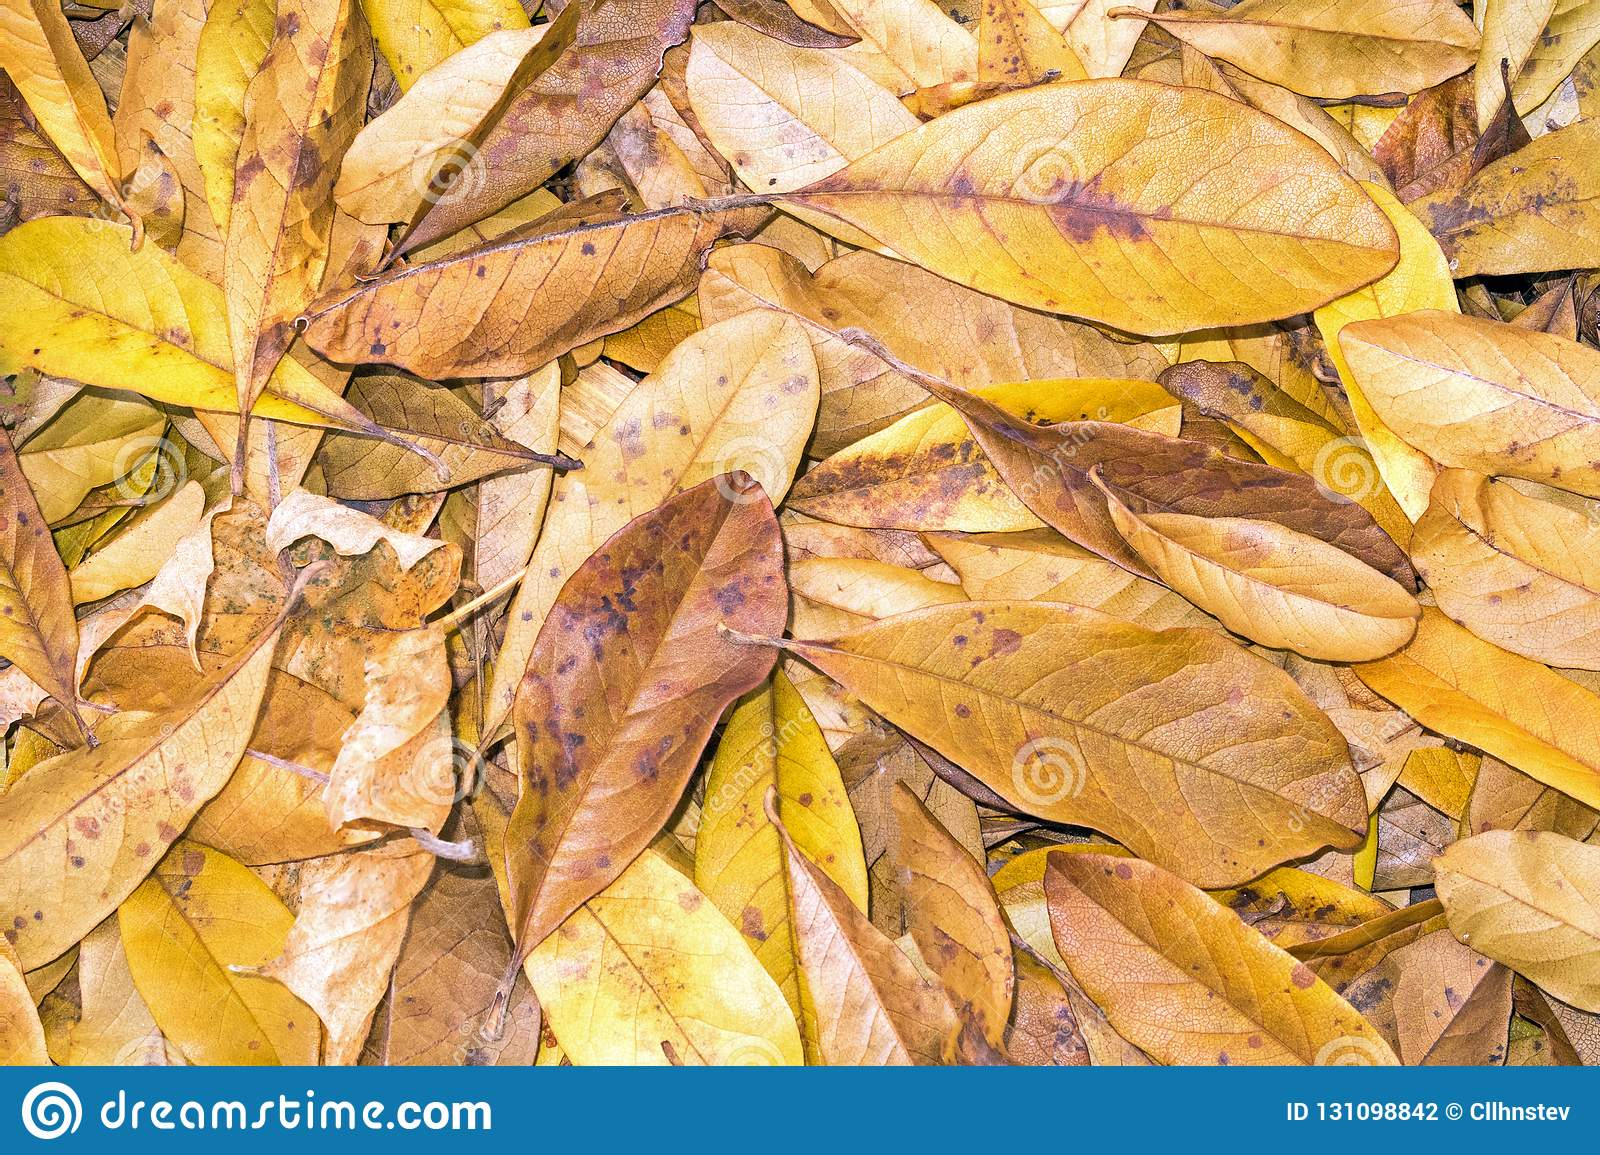 Fallen Yellow Star Magnolia Leaves Stock Photo Image Of Showing